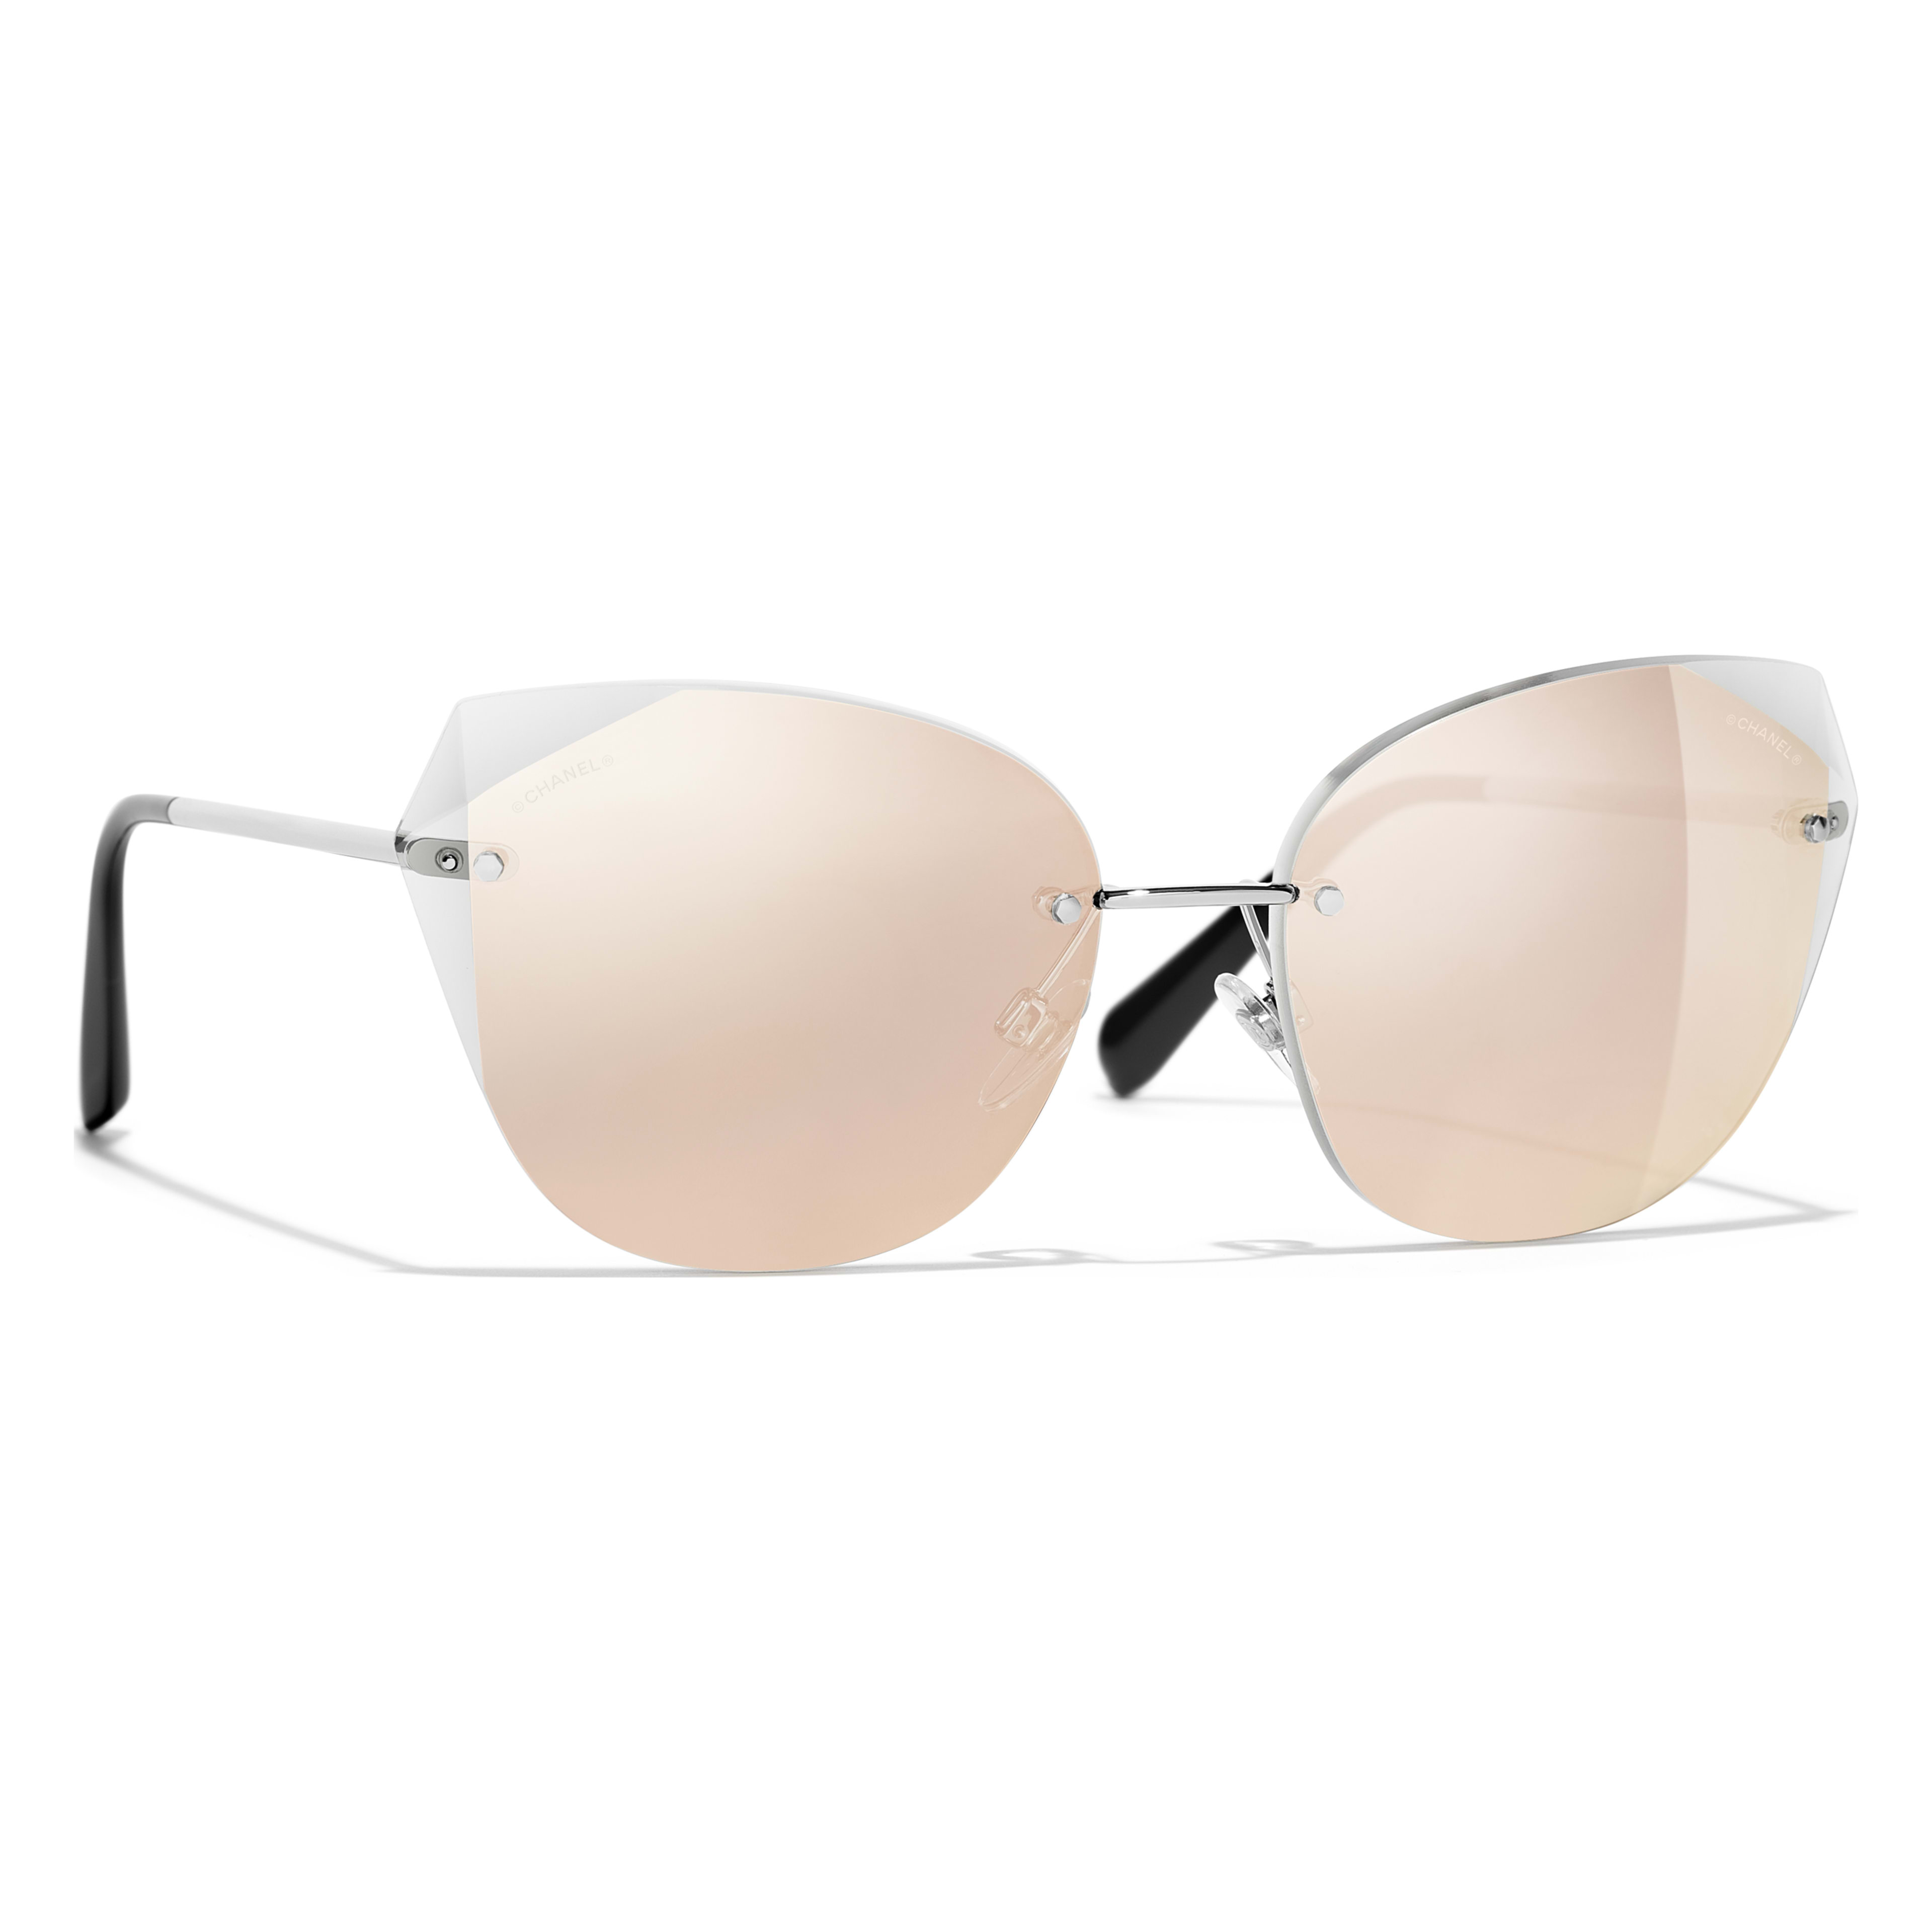 da2d52d9ef See other colors Silver frame. Silver   pink mirror lenses.